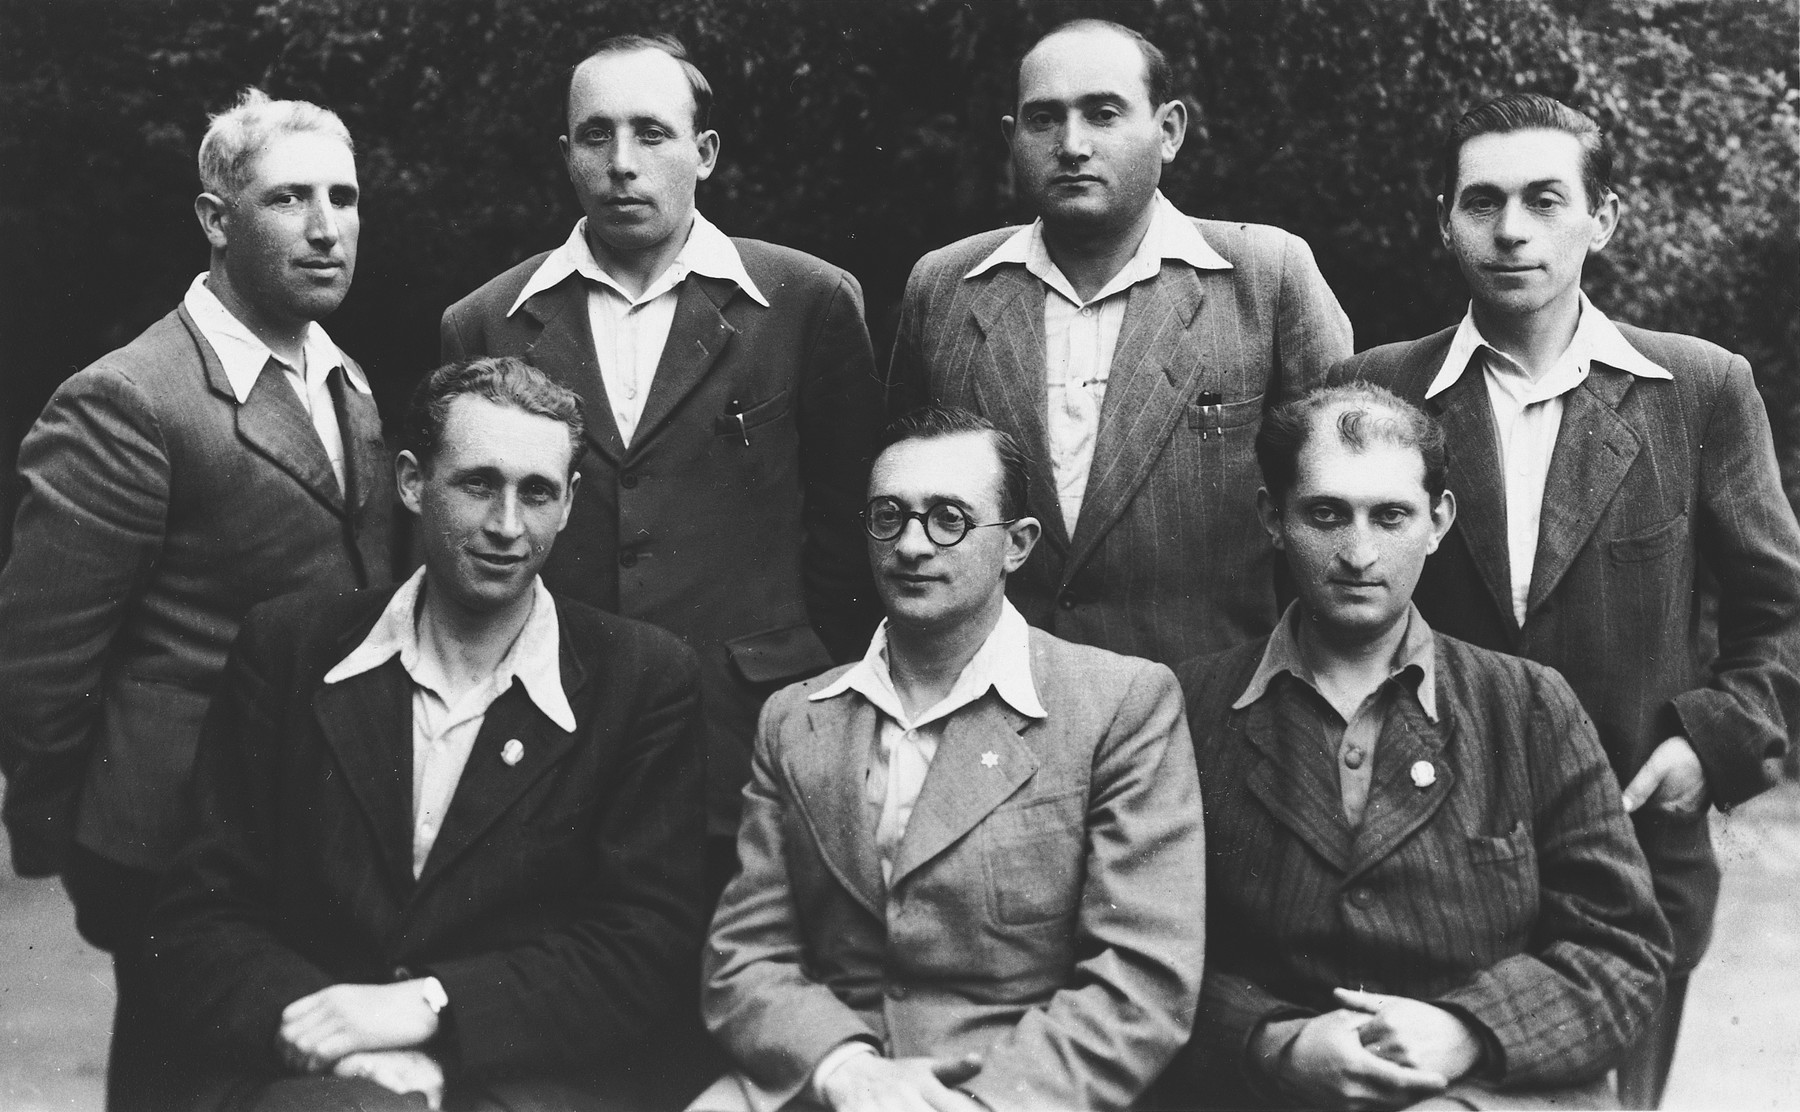 Leaders of the Lampertheim DP camp.  Abram Borenstein is standing in the back row, second from the left.